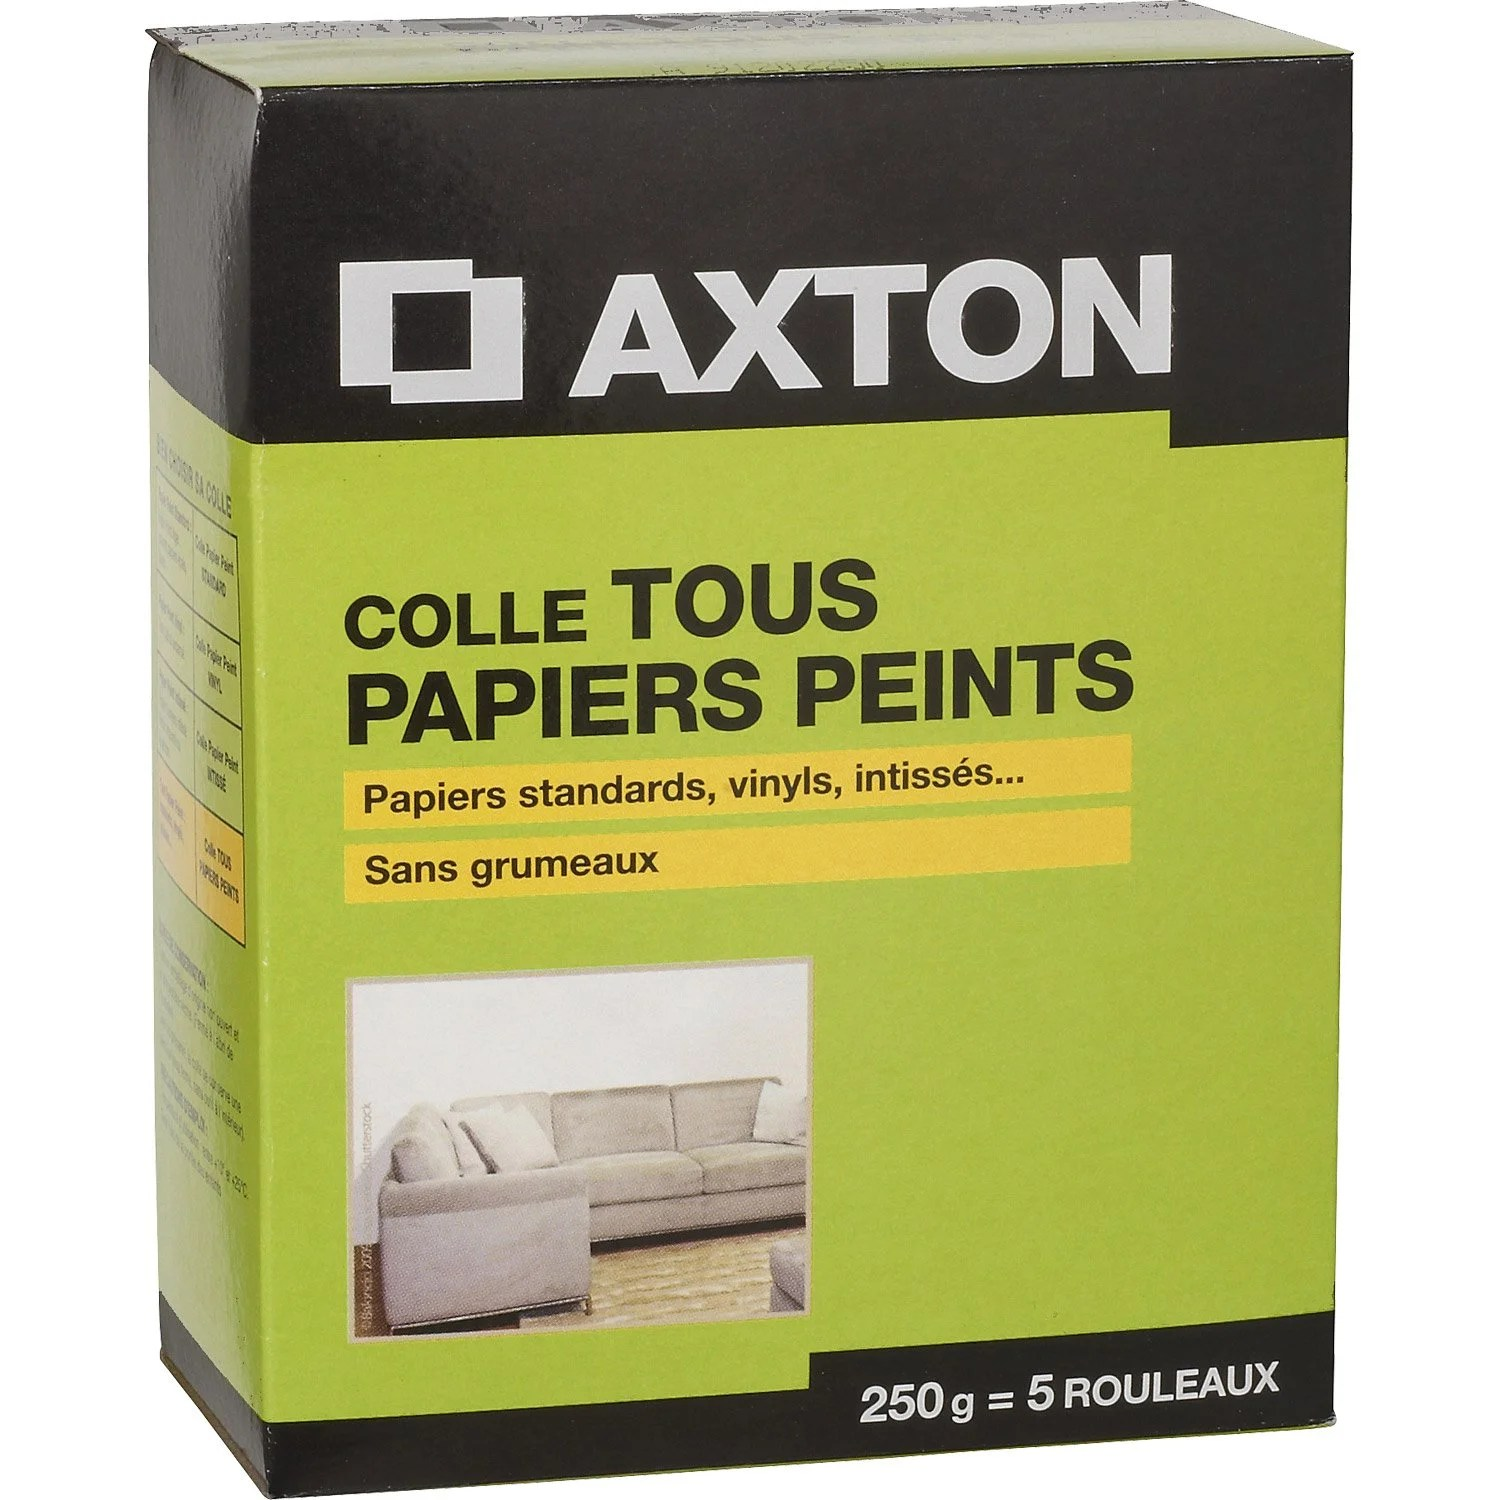 Pate Thermique Leroy Merlin Interesting Colle Tous Papiers Peints Axton Kg With Pose